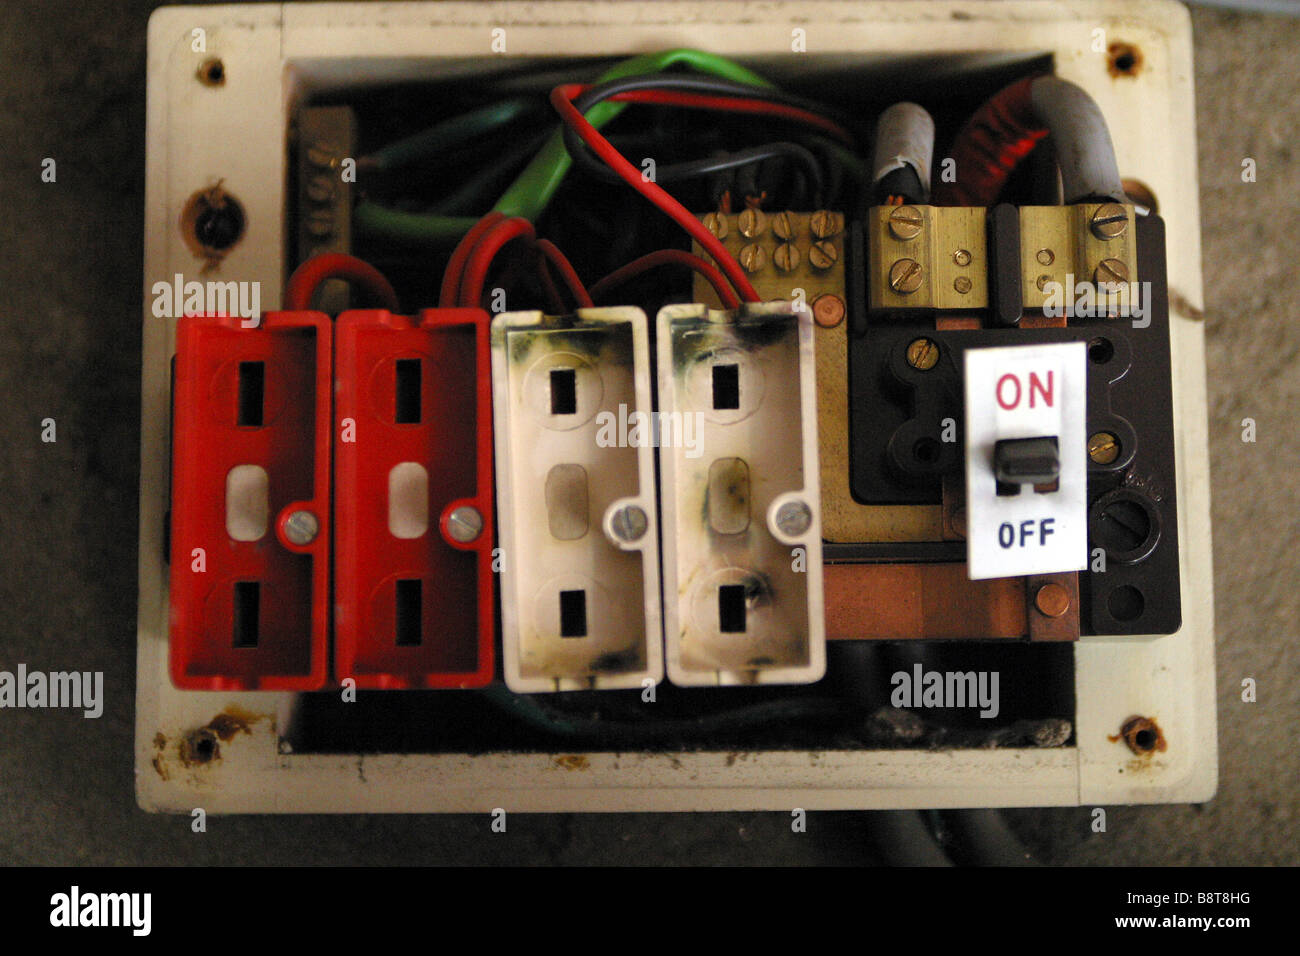 fuse box house stock photos fuse box house stock images alamy rh alamy com old house fuse box parts for sale old house fuse box wiring